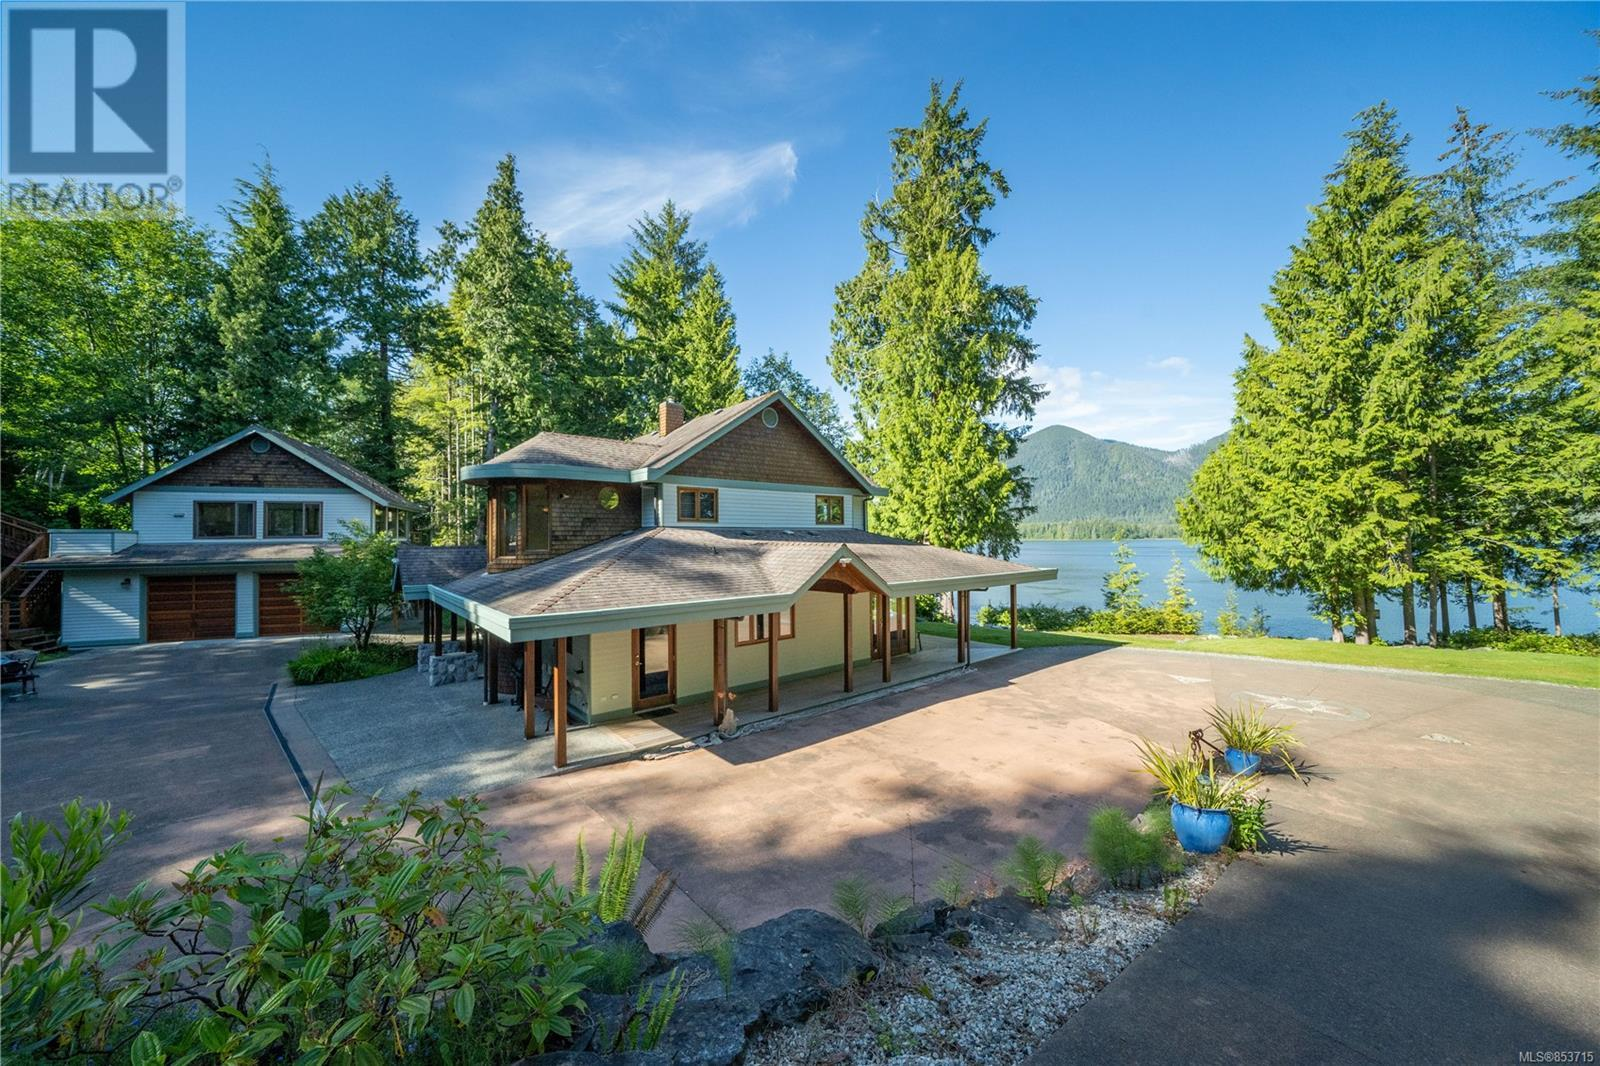 MLS® #853715 - Tofino House For sale Image #61